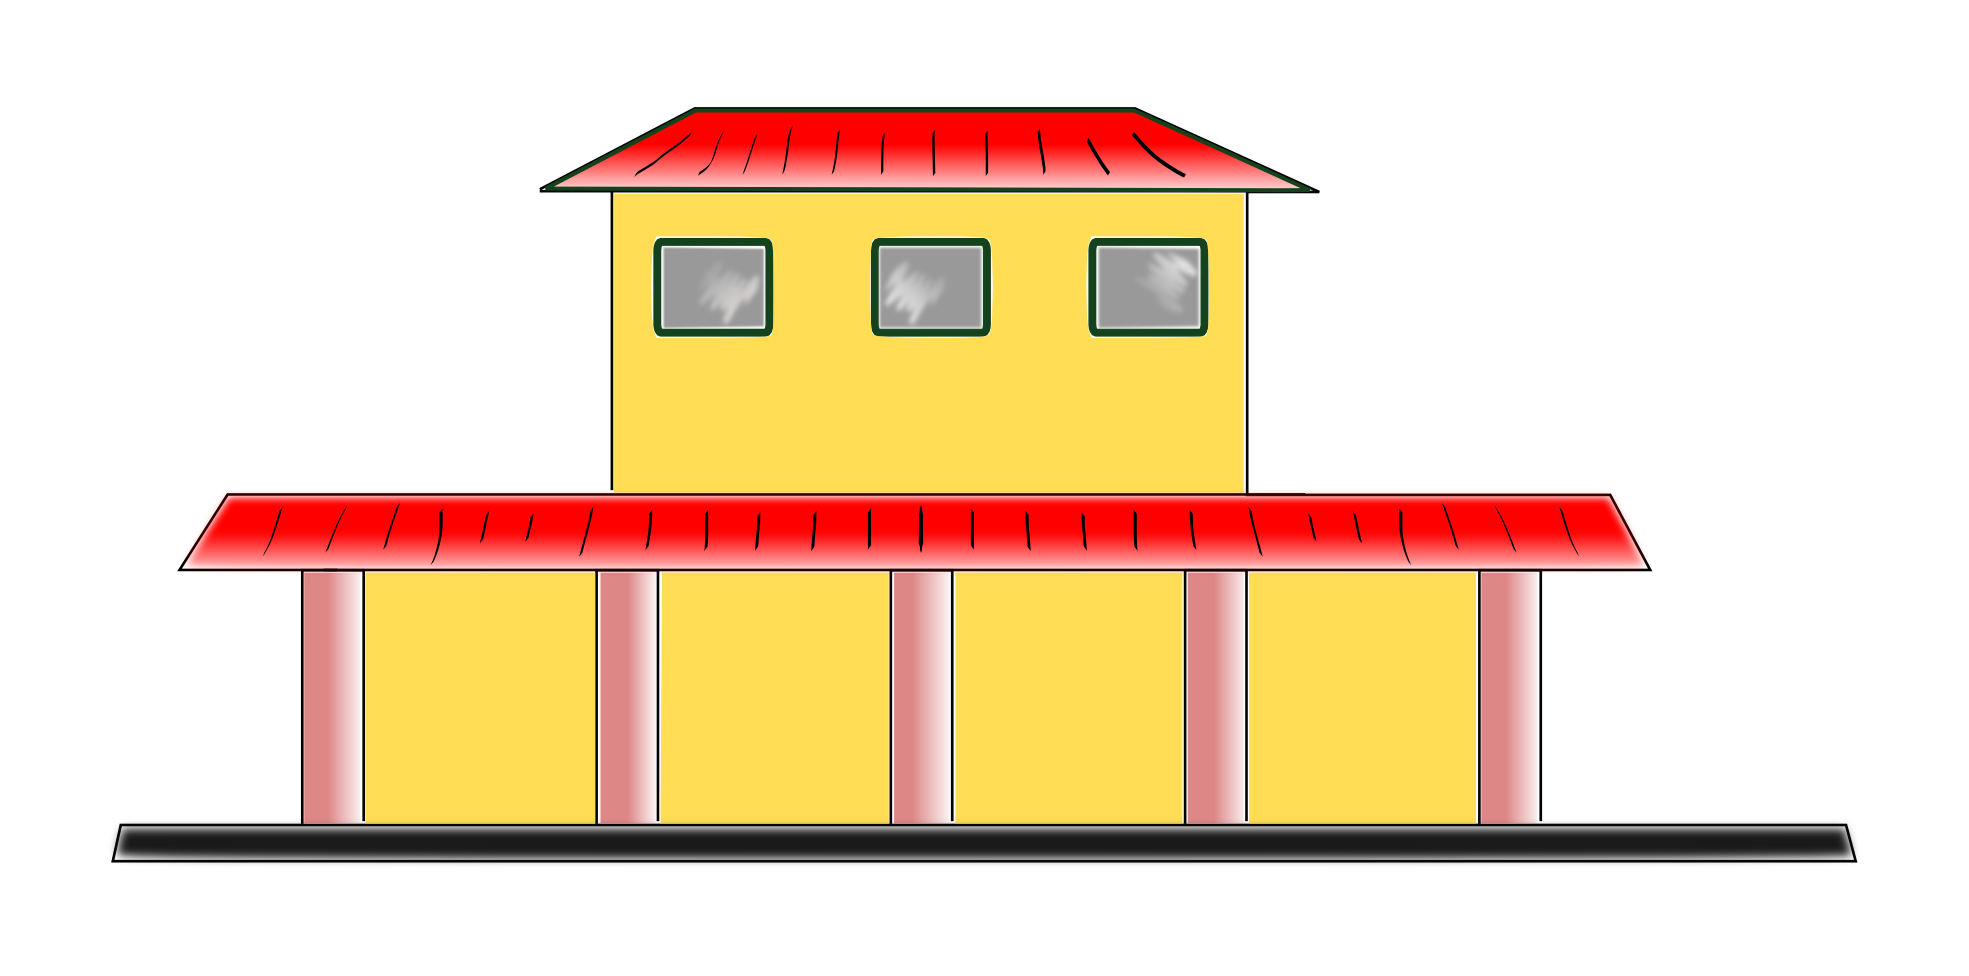 Train Station clipart train platform Train%20station%20clipart Clipart Clipart Panda Free